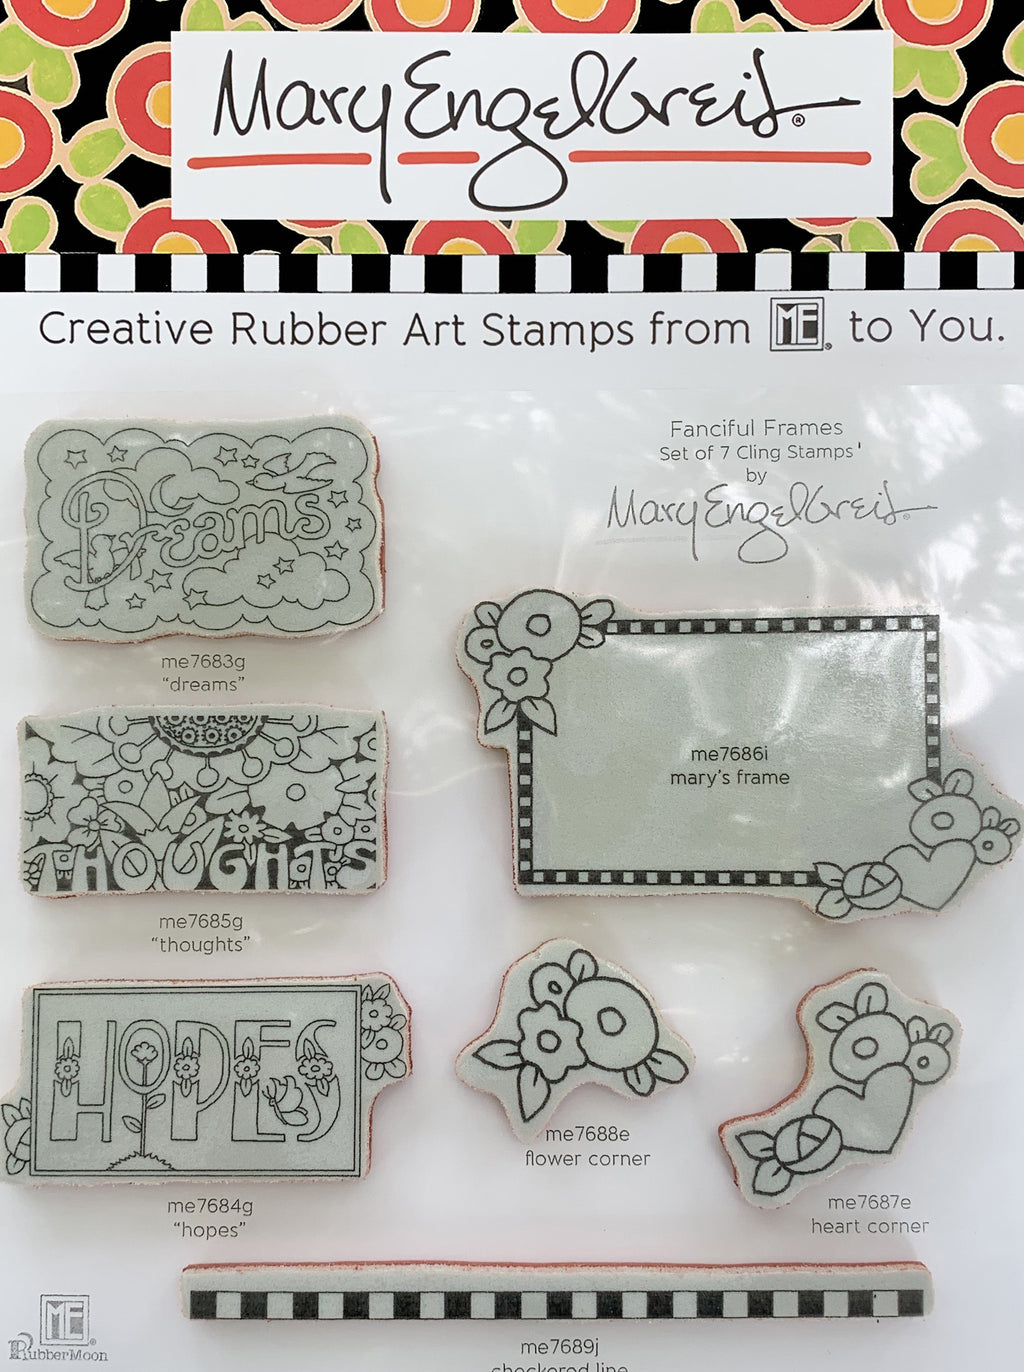 Fanciful Frames Stamps